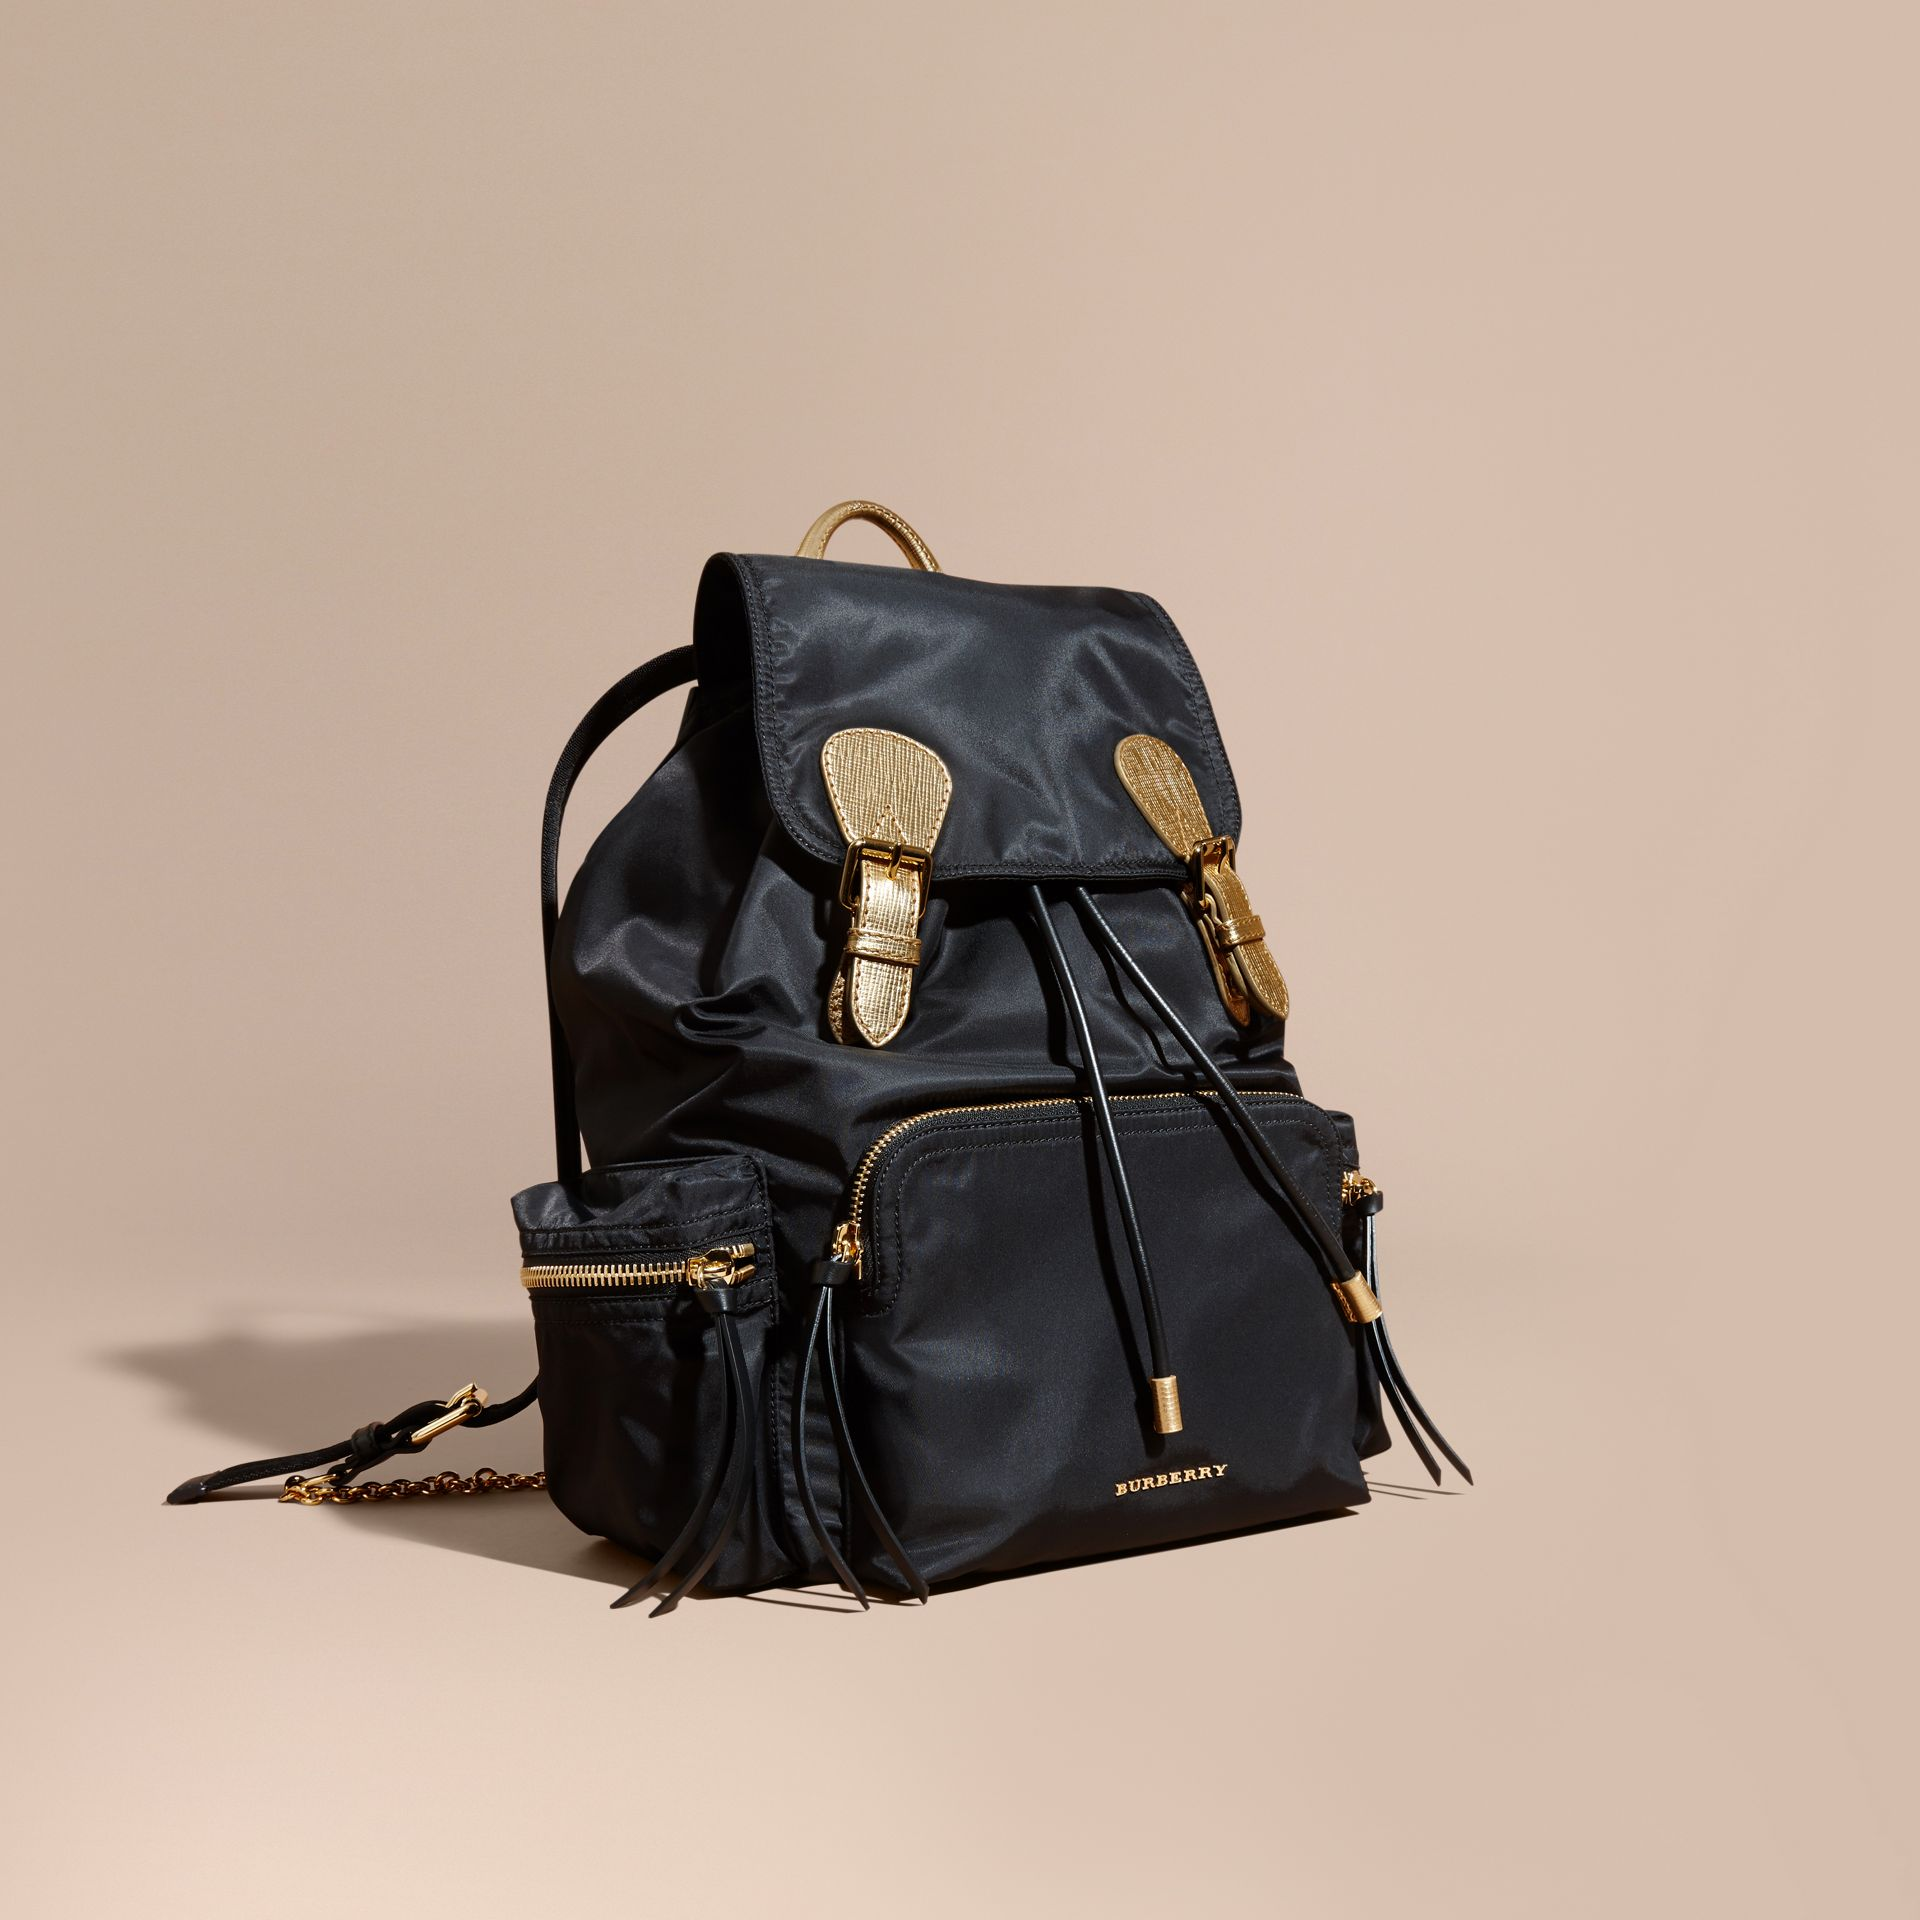 Black/gold The Large Rucksack in Two-tone Nylon and Leather - gallery image 1